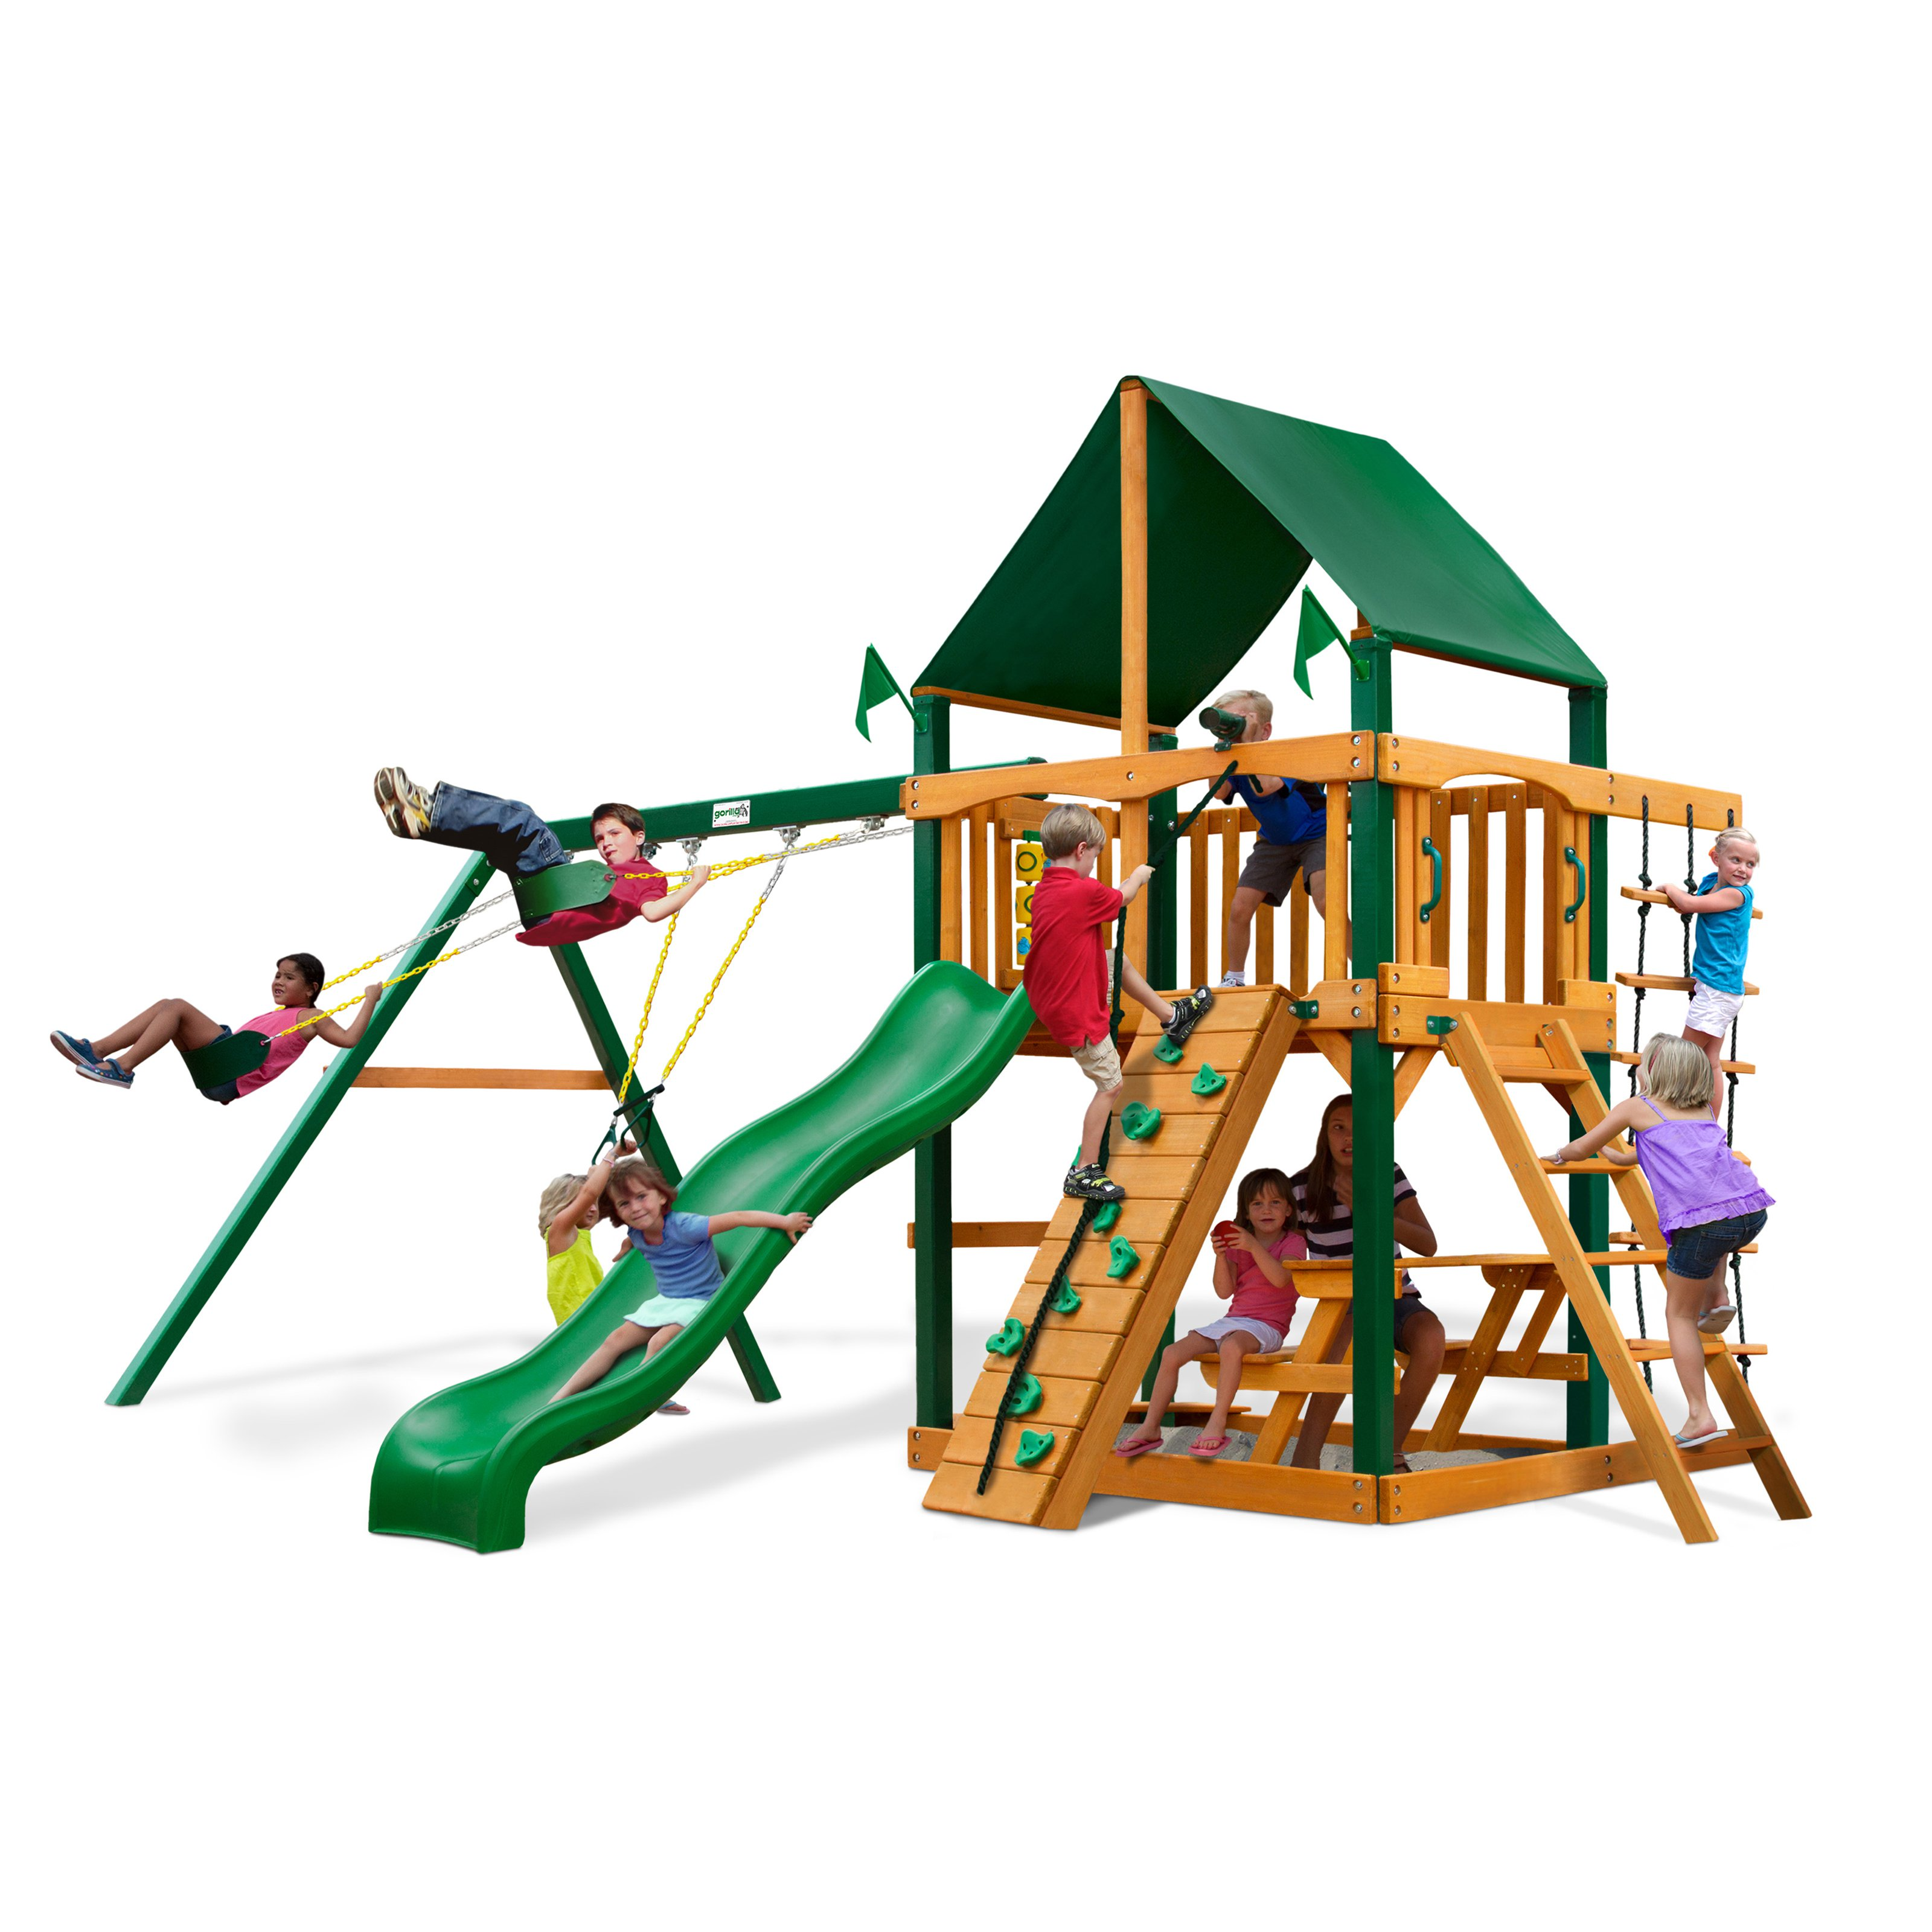 Gorilla Playsets Chateau Supreme Wood Swing Set with Canvas Green Canopy